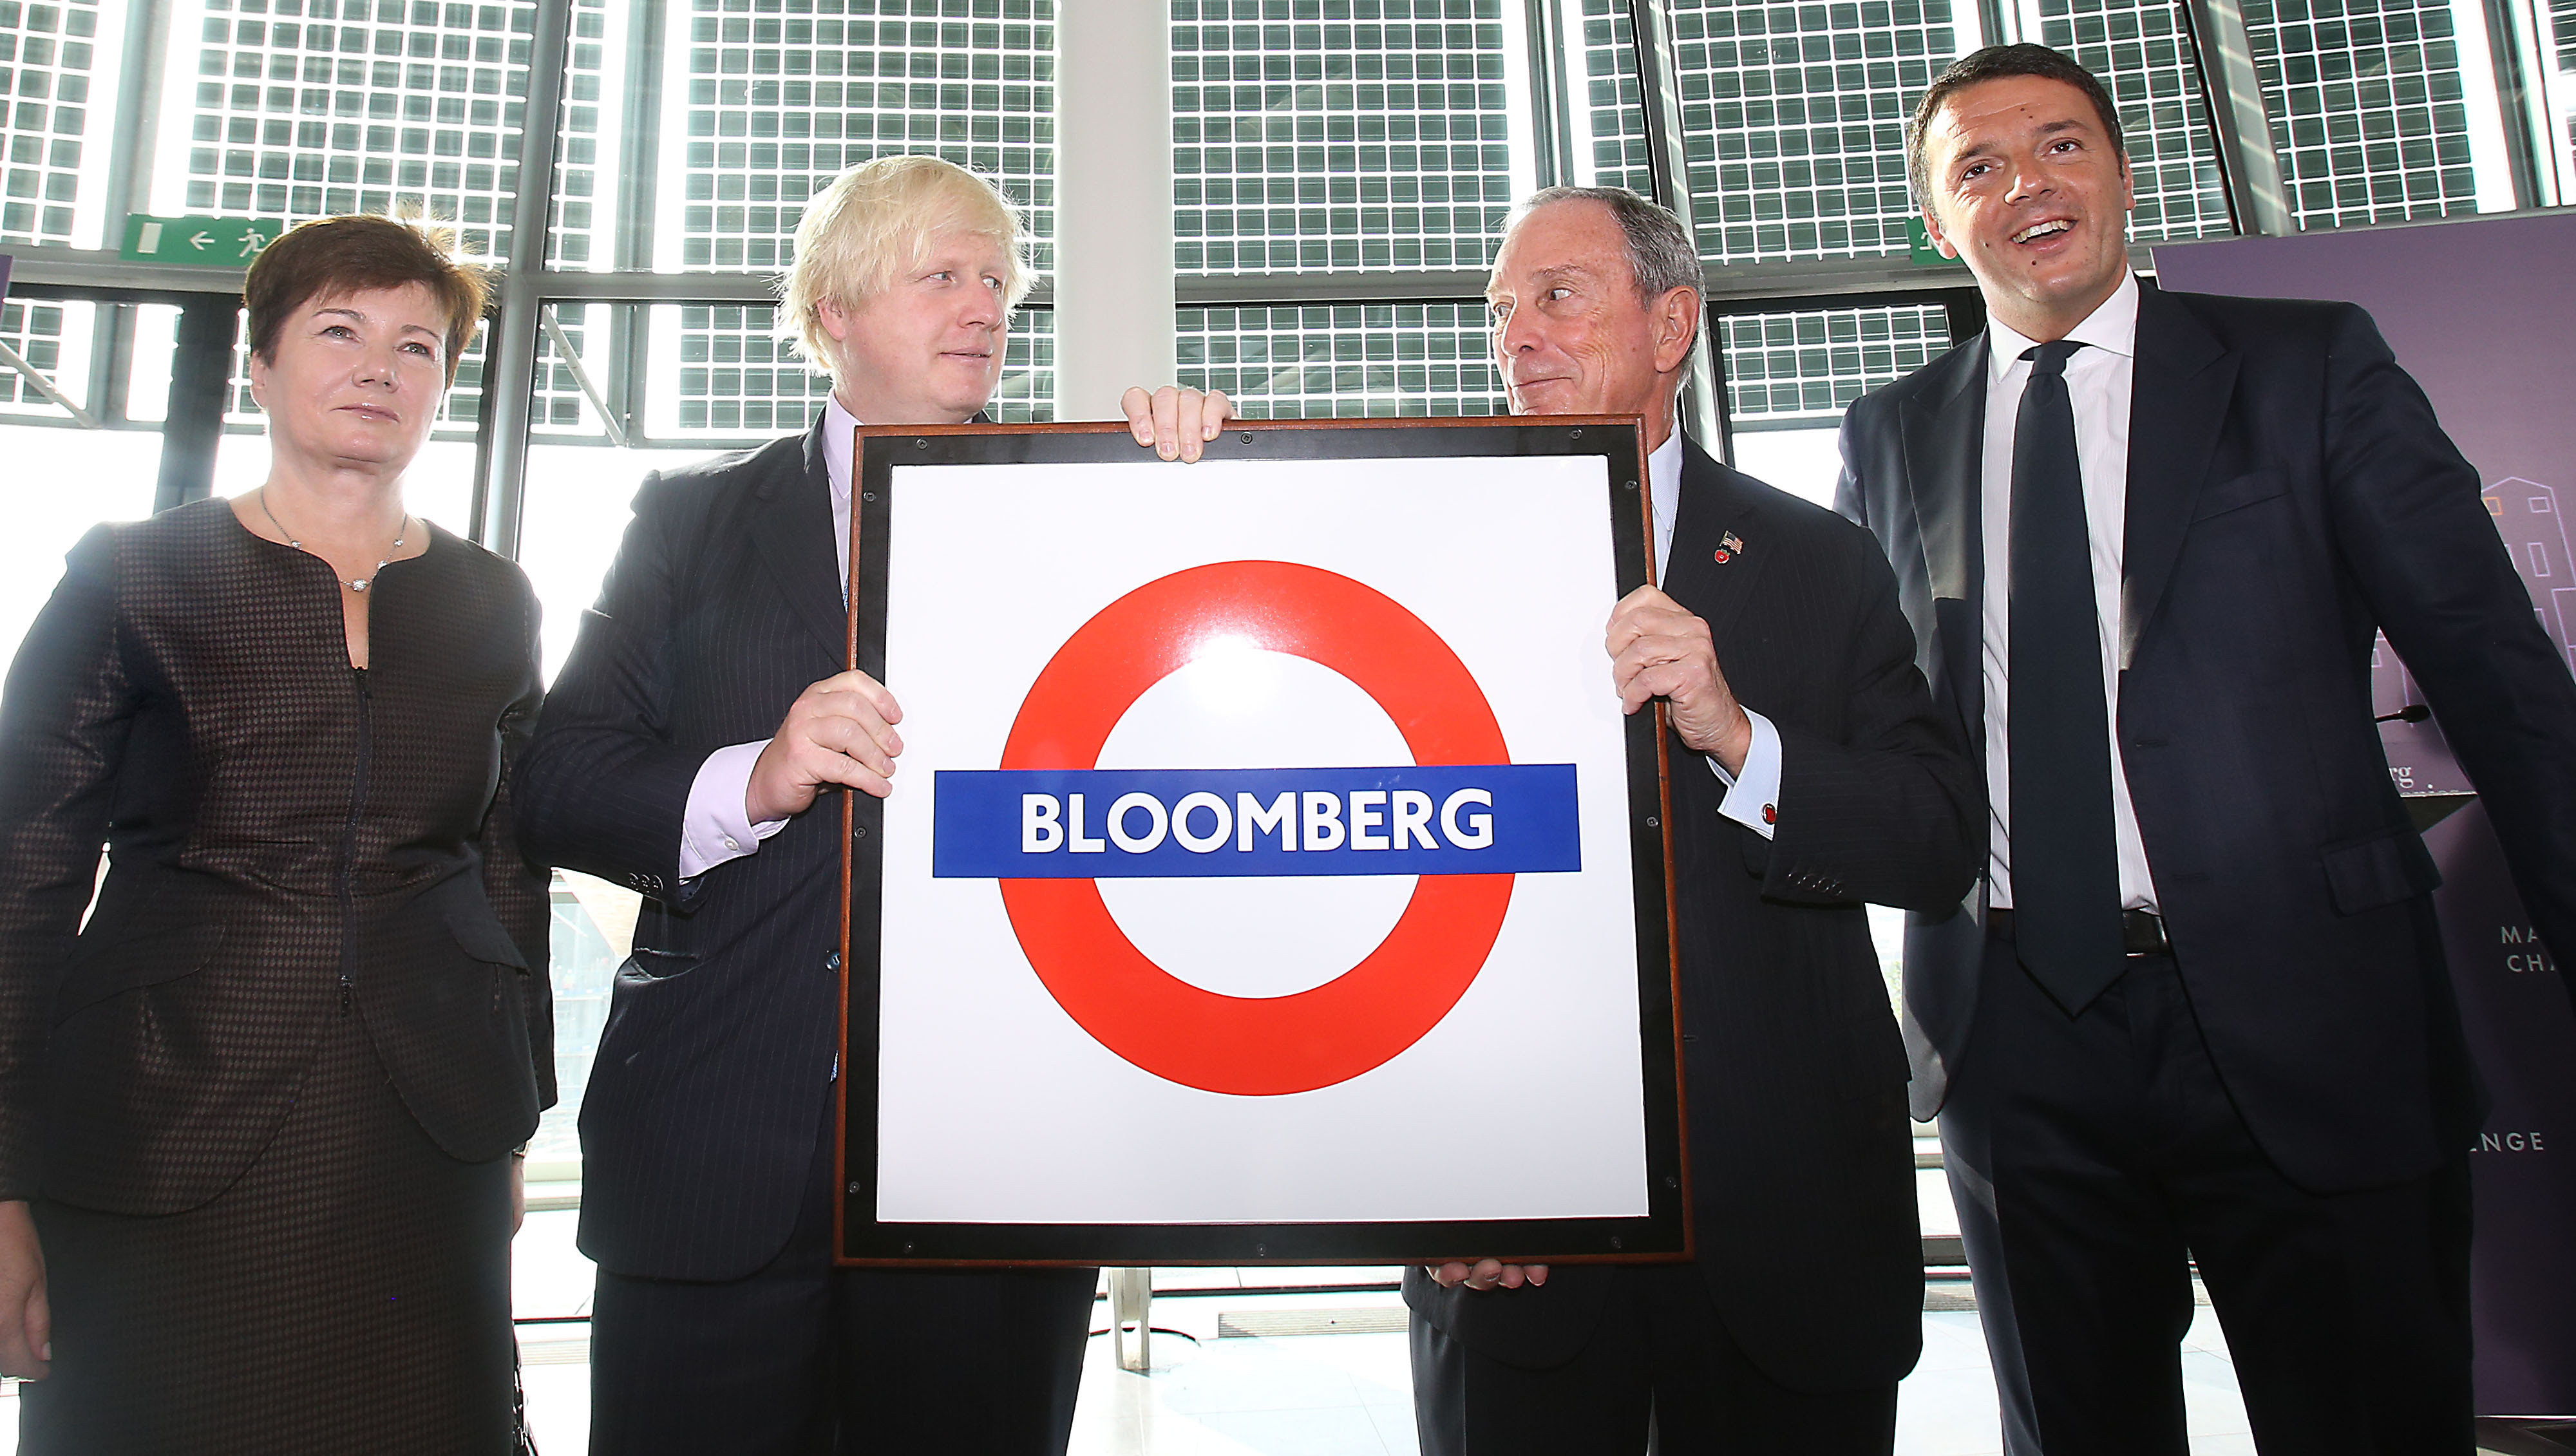 (left to right) Hanna Gronkiewicz-Waltz the mayor of Warsaw, Boris Johnson the Mayor of London, Michael Bloomberg the Mayor of New York and Matteo Renzi the Mayor of Florence at the launch of the Mayors Challenge in Europe at City Hall in London, Boris Johnson is holding a gift presented to Michael Bloomberg . PRESS ASSOCIATION Photo. Picture date: Tuesday September 24, 2013. The competition invites leaders of European cities to enter with prizes of 5 million Euros for the grand winner. PRESS ASSOCIATION Photo. Picture date: Tuesday September 24, 2013. The competition invites leaders of European cities to enter with prizes of 5 million Euros for the grand winner. Photo credit should read: Philip Toscano/PA Wire